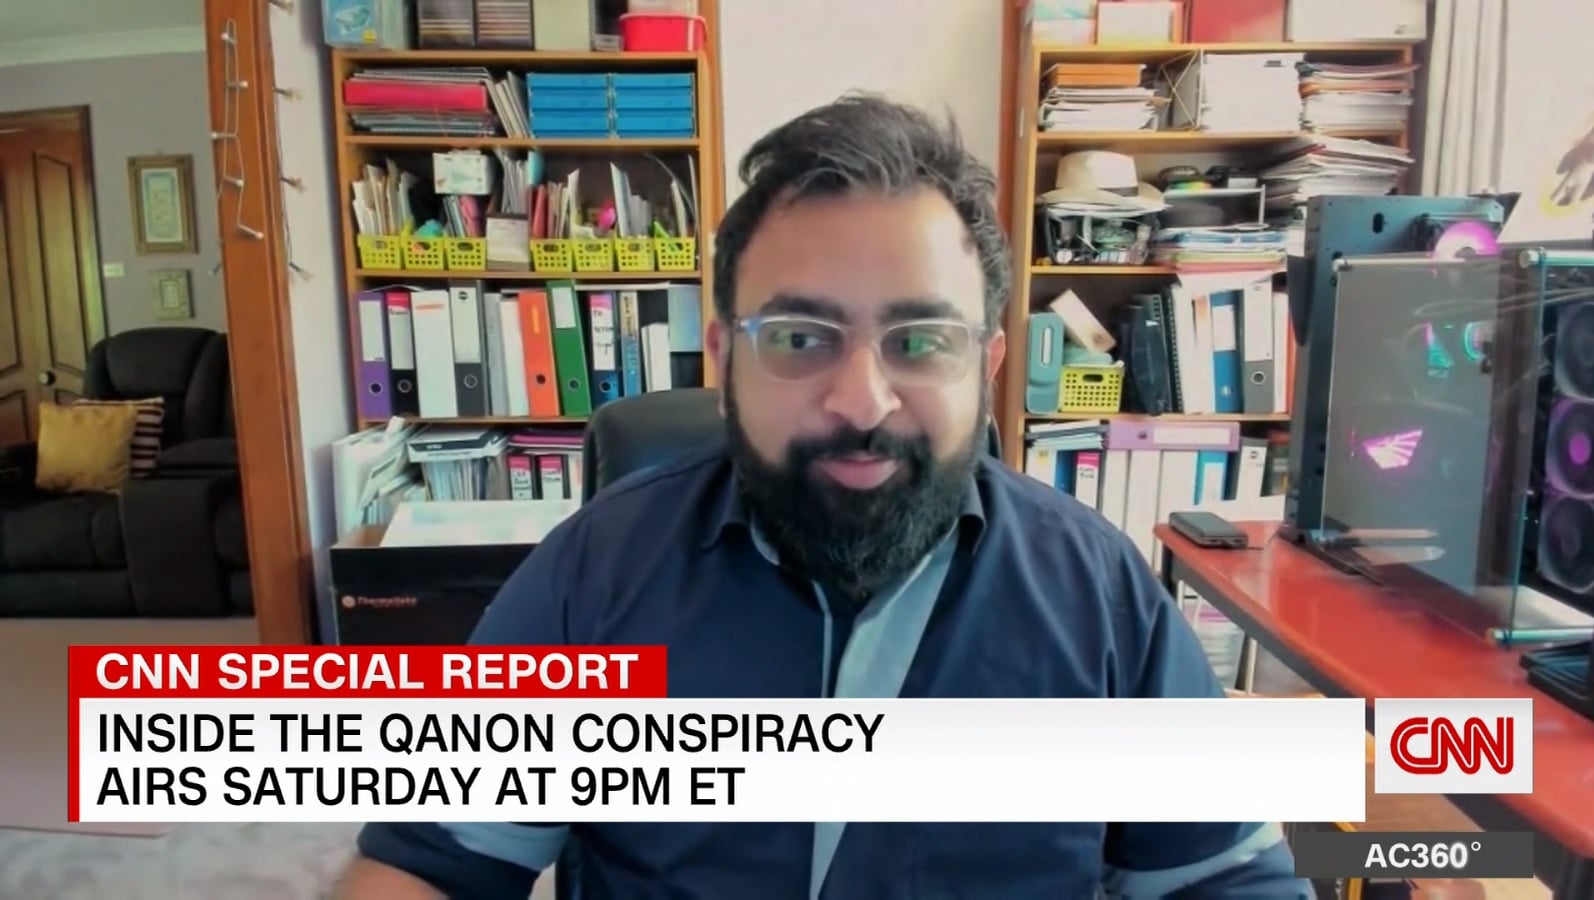 CNN anchor Anderson Cooper aired an extraordinary interview on Saturday with a former QAnon believer Jitarth Jadeja